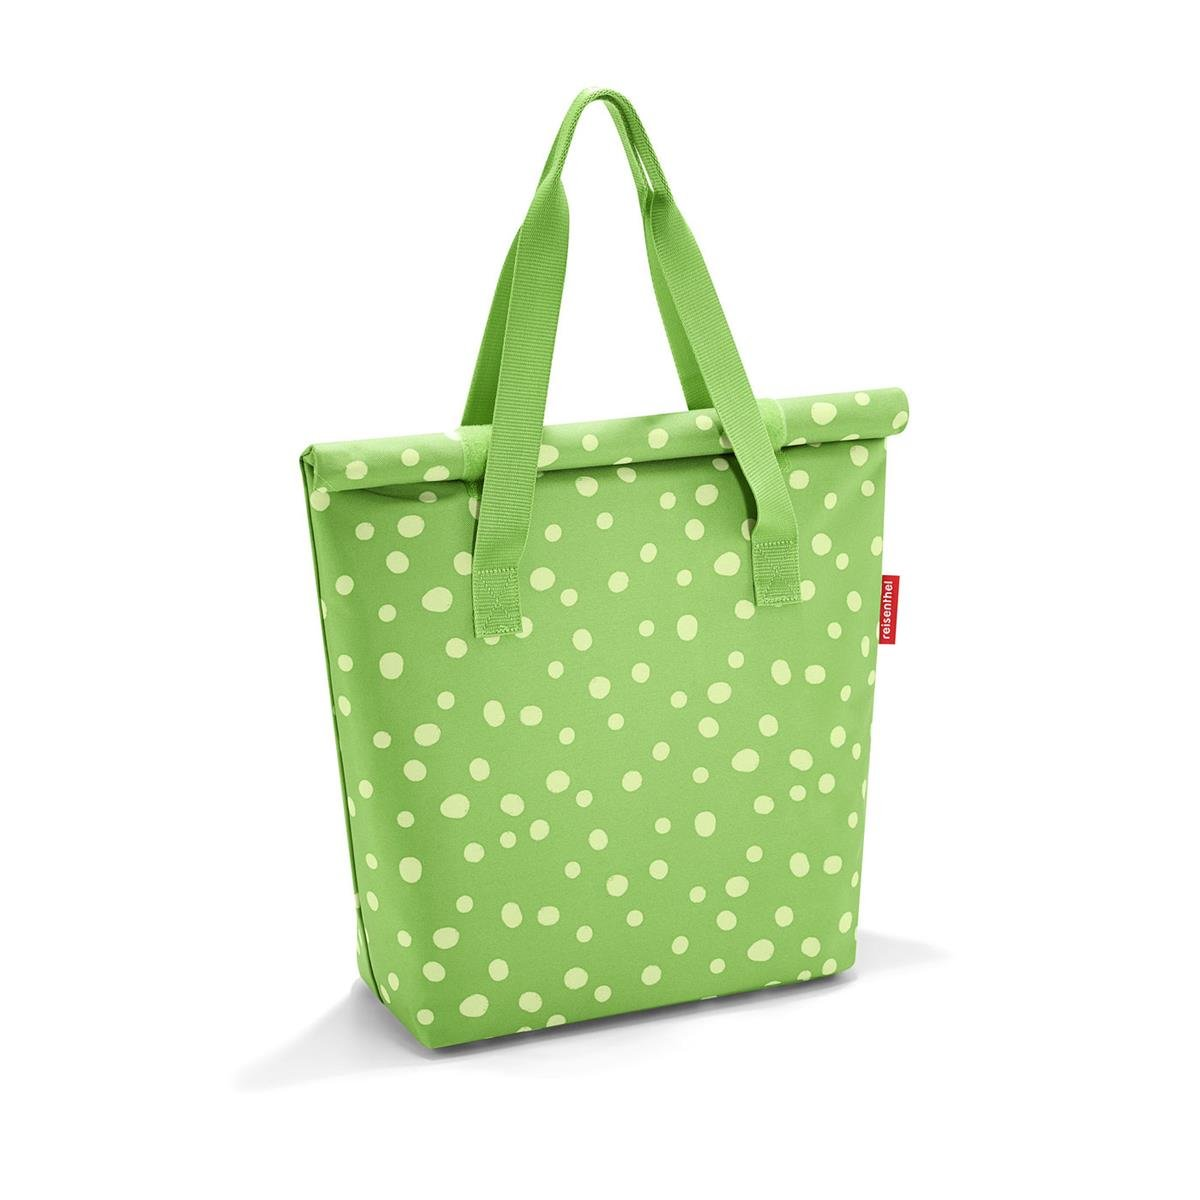 Reisenthel Fresh lunchbag iso L Bagage Cabine 48 Centimeters 20 Multicolore (Dots)